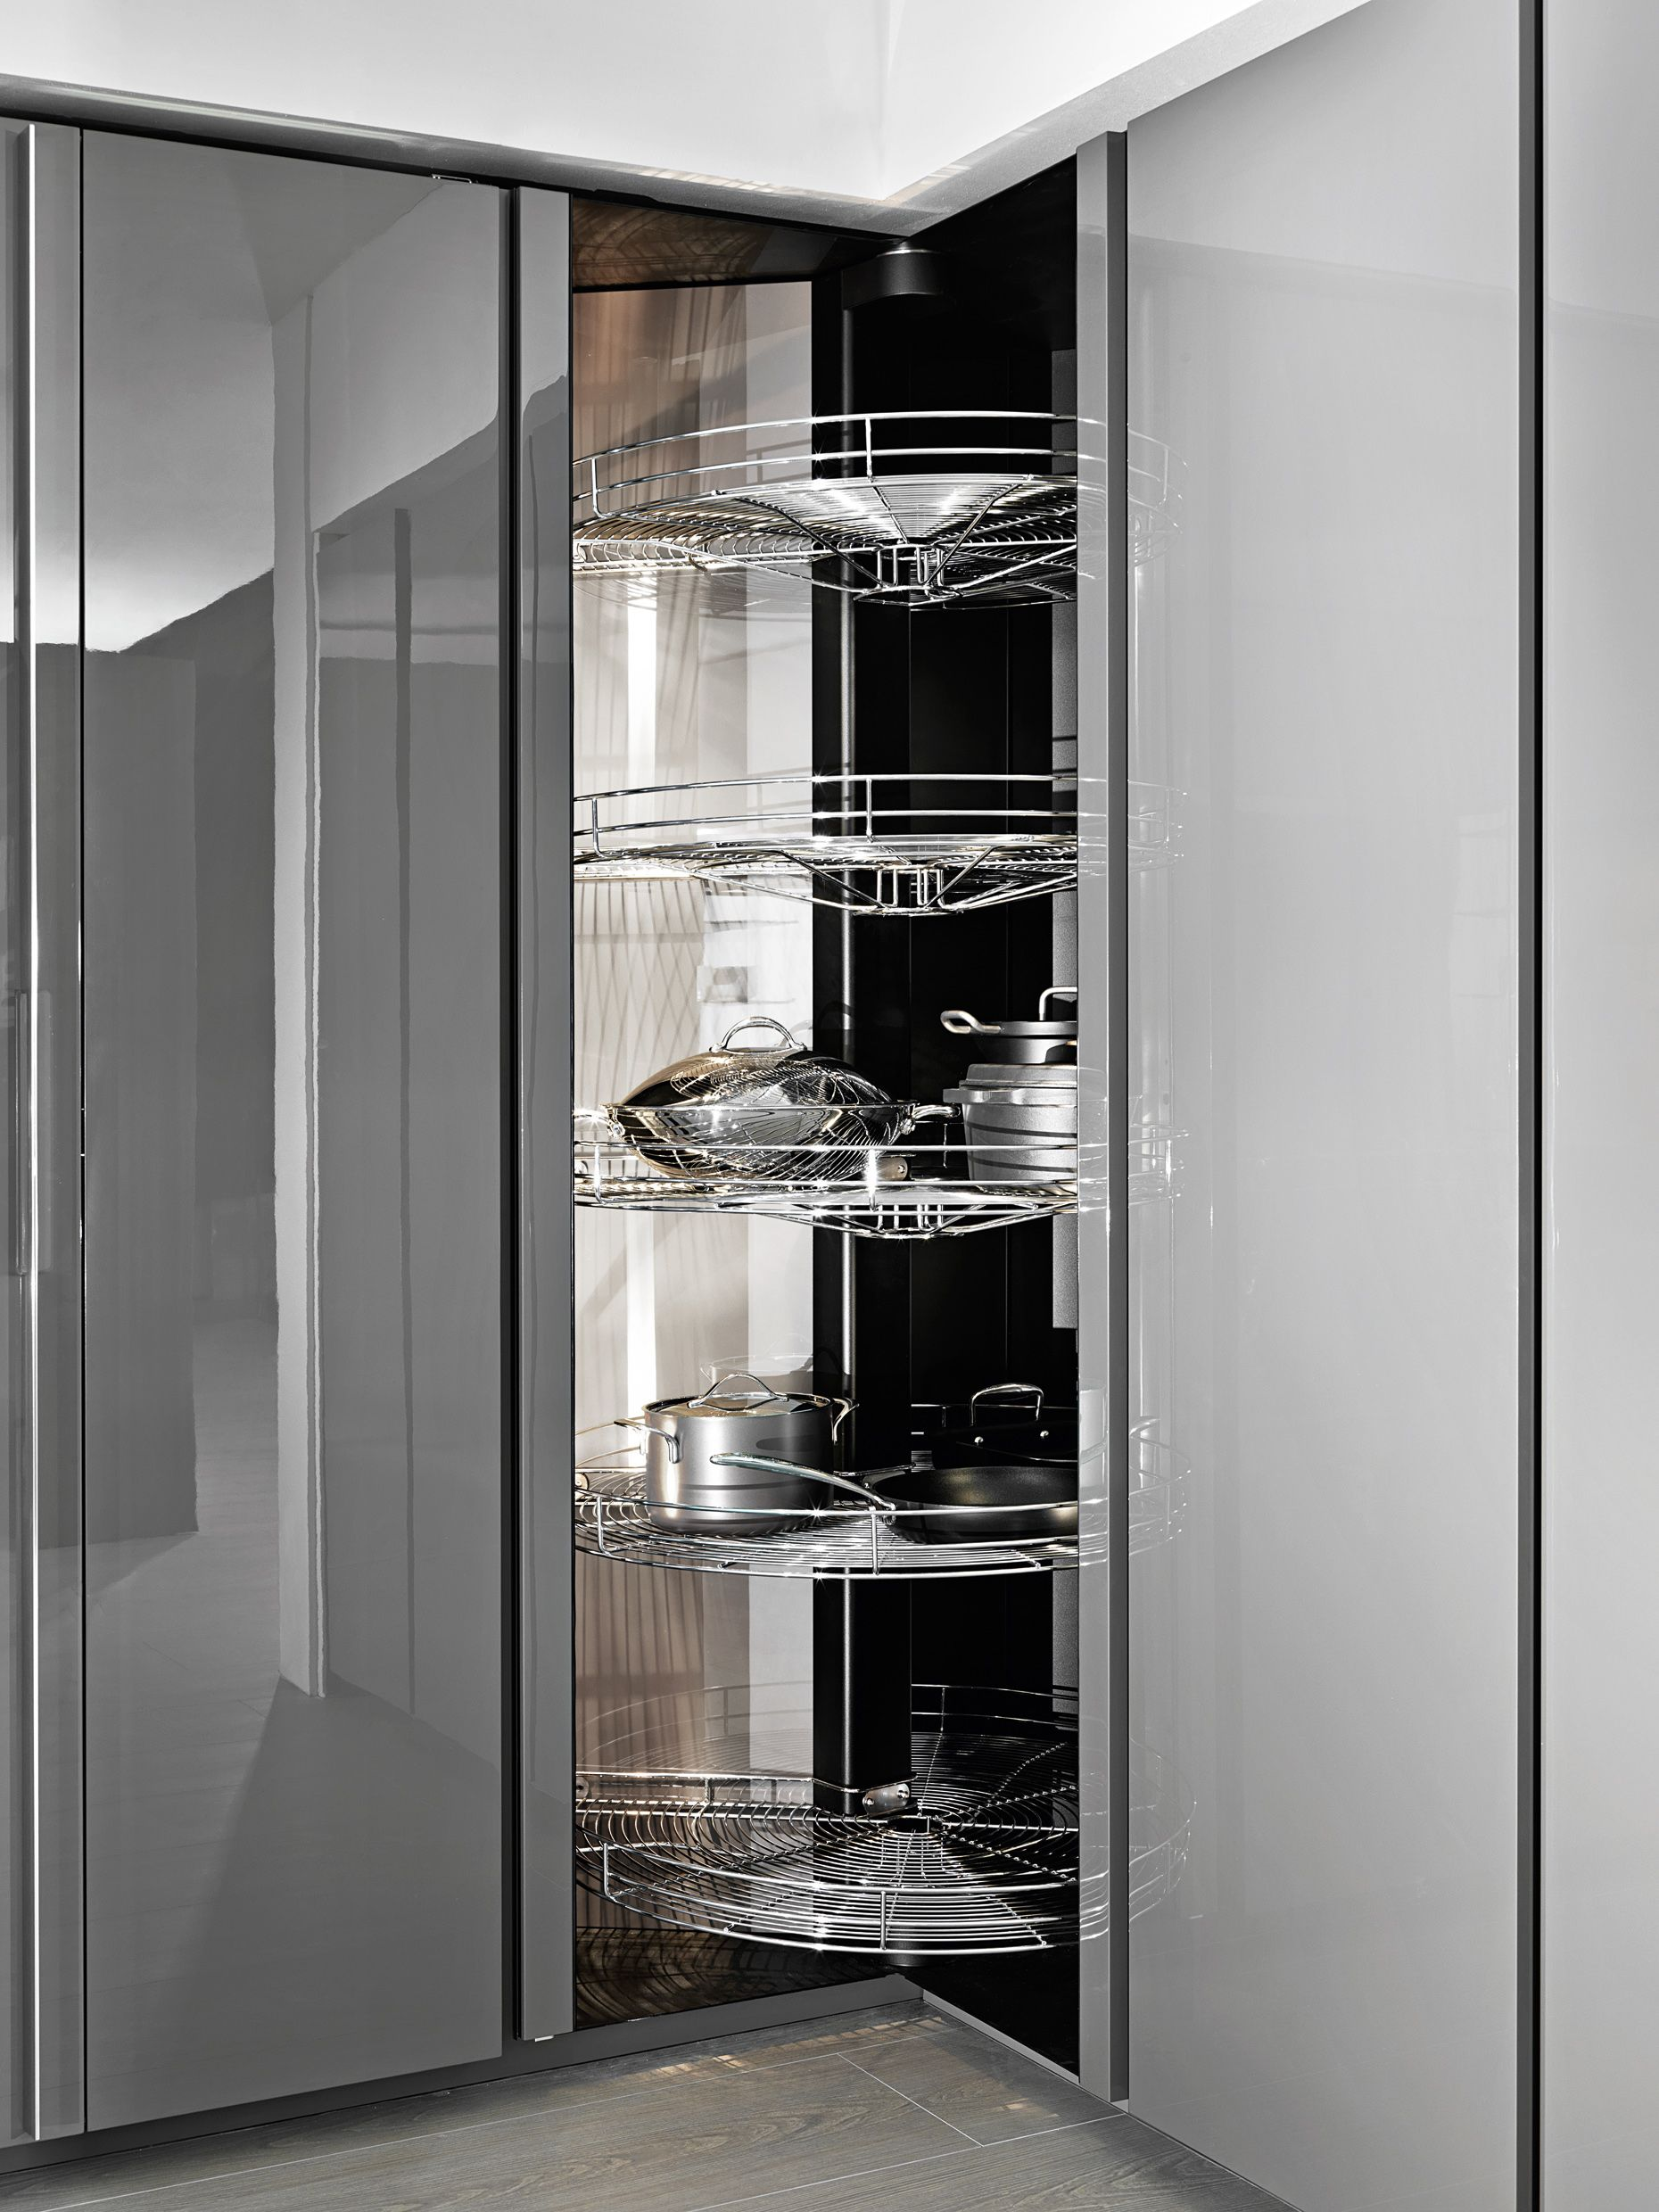 Dada Revolving Column It is a pantry for corner solutions